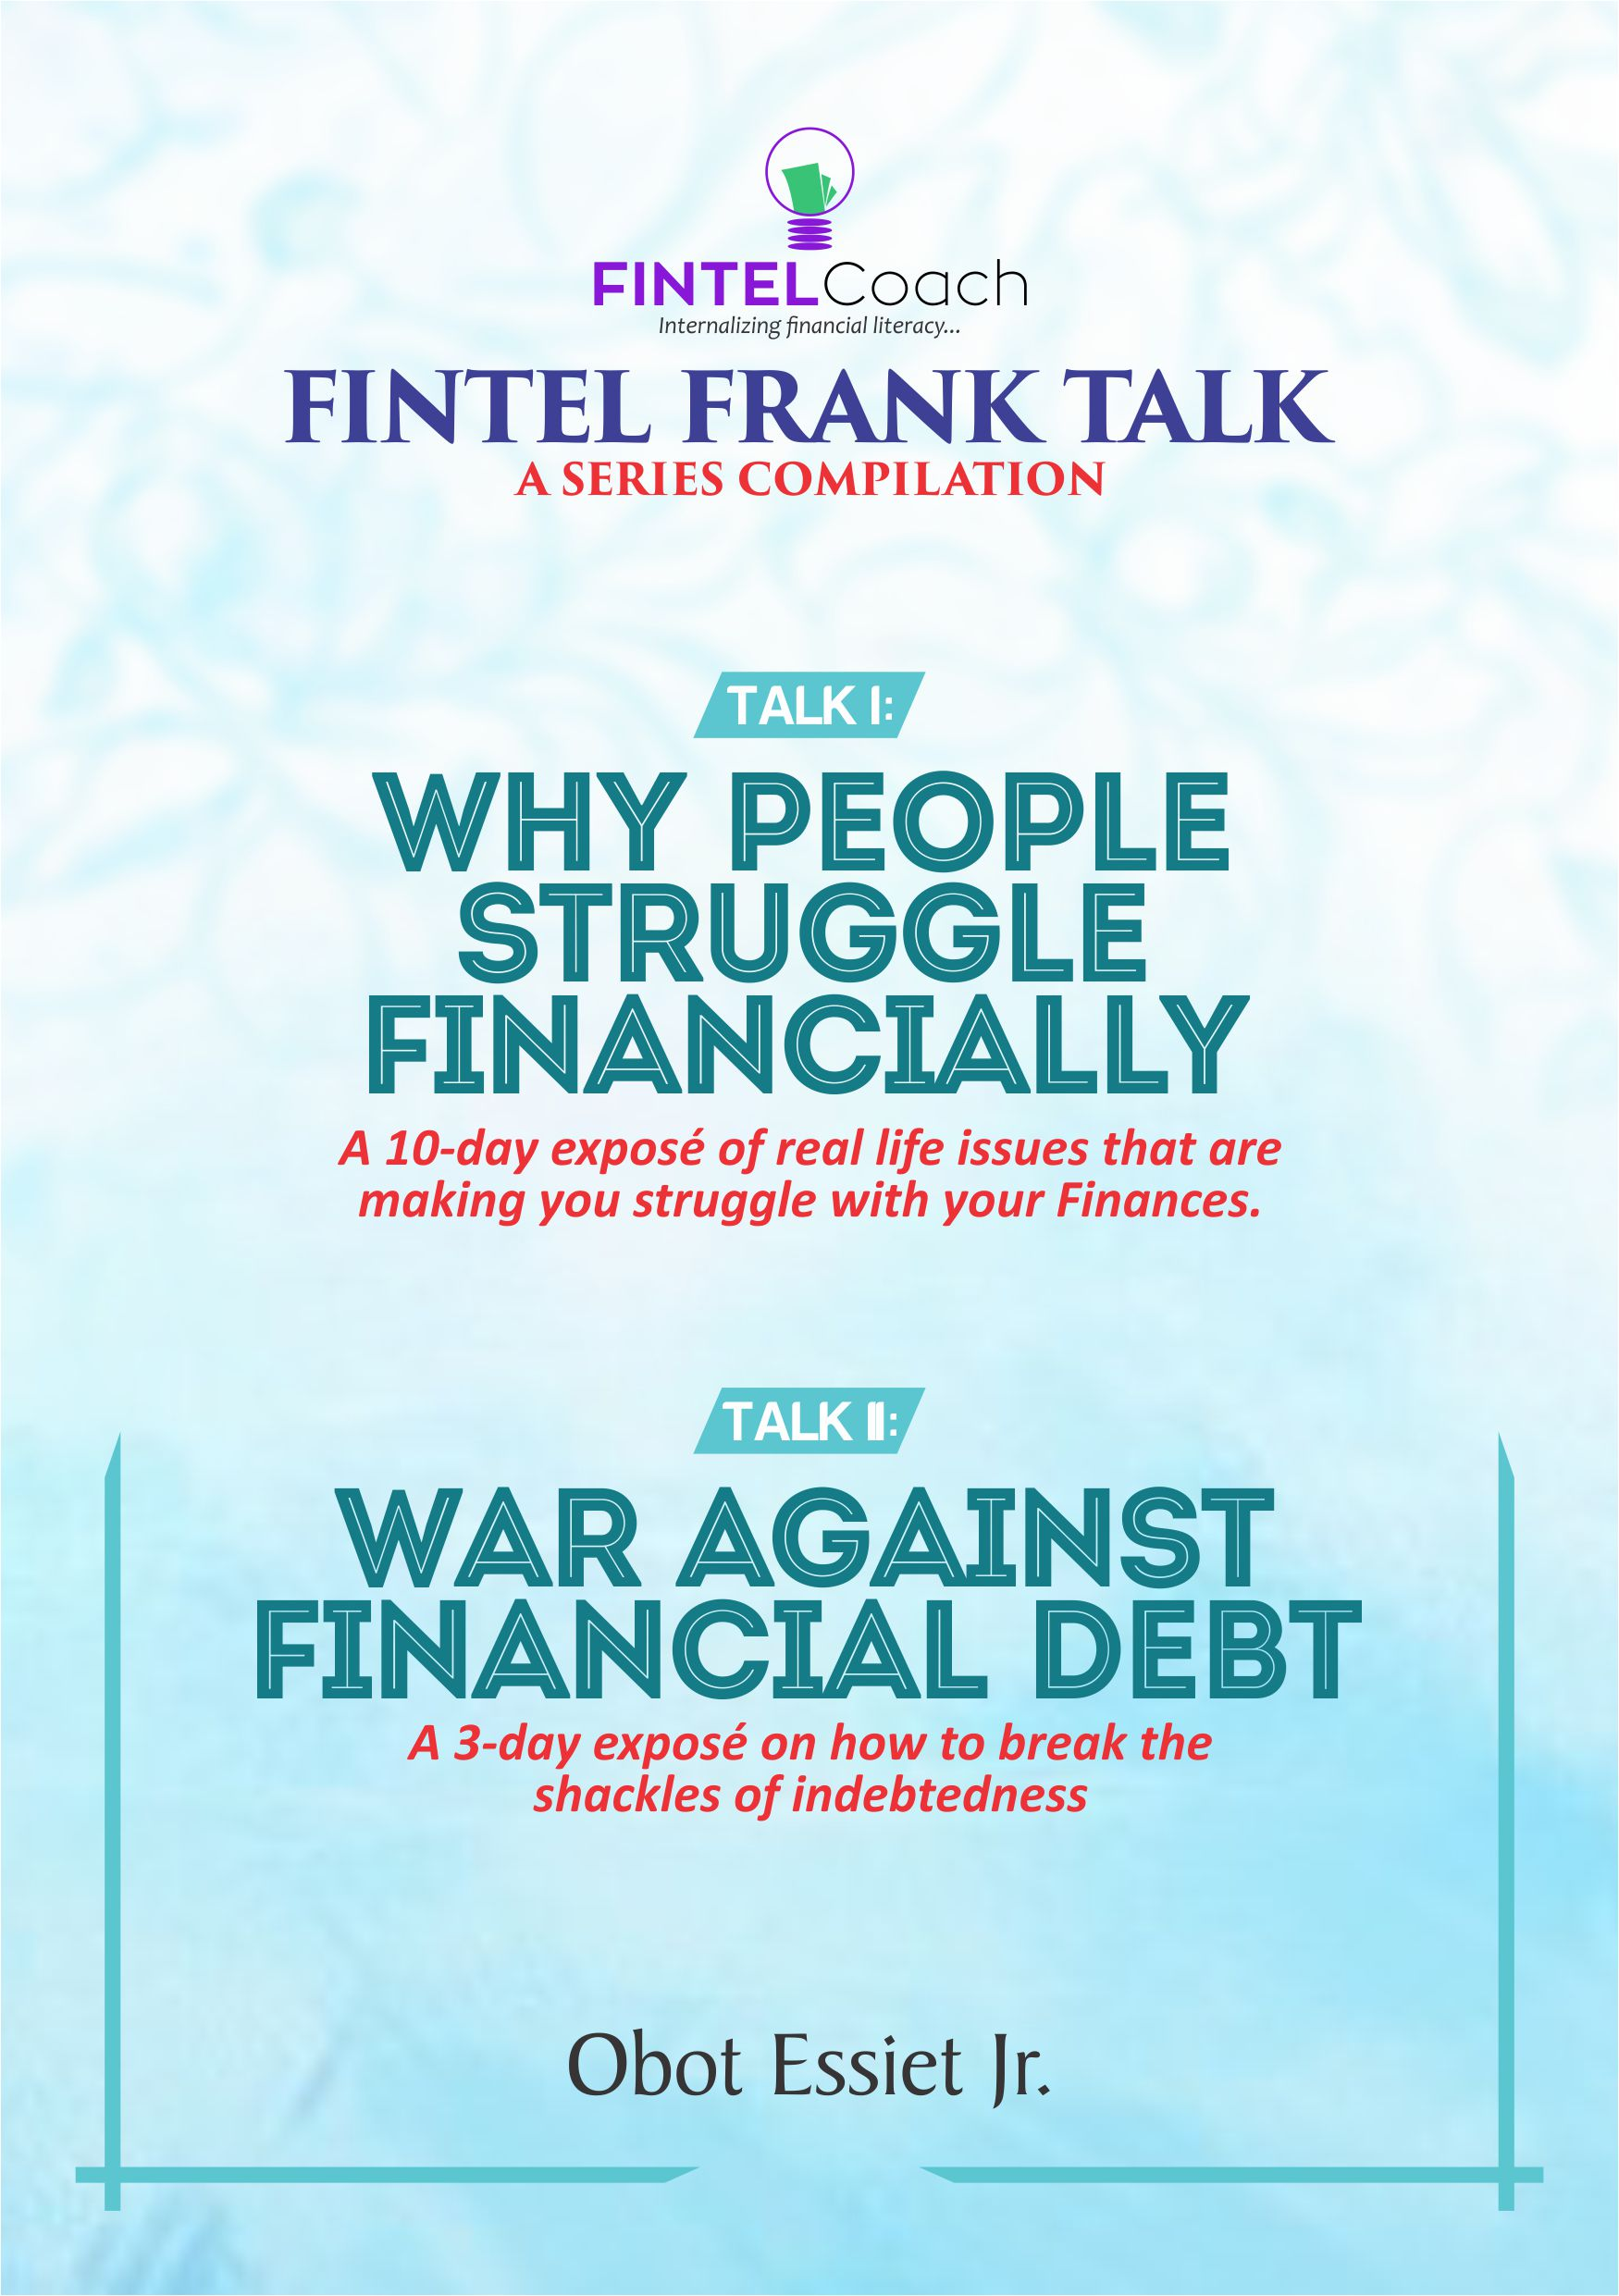 FINTEL FRANK TALK BOOK COVER